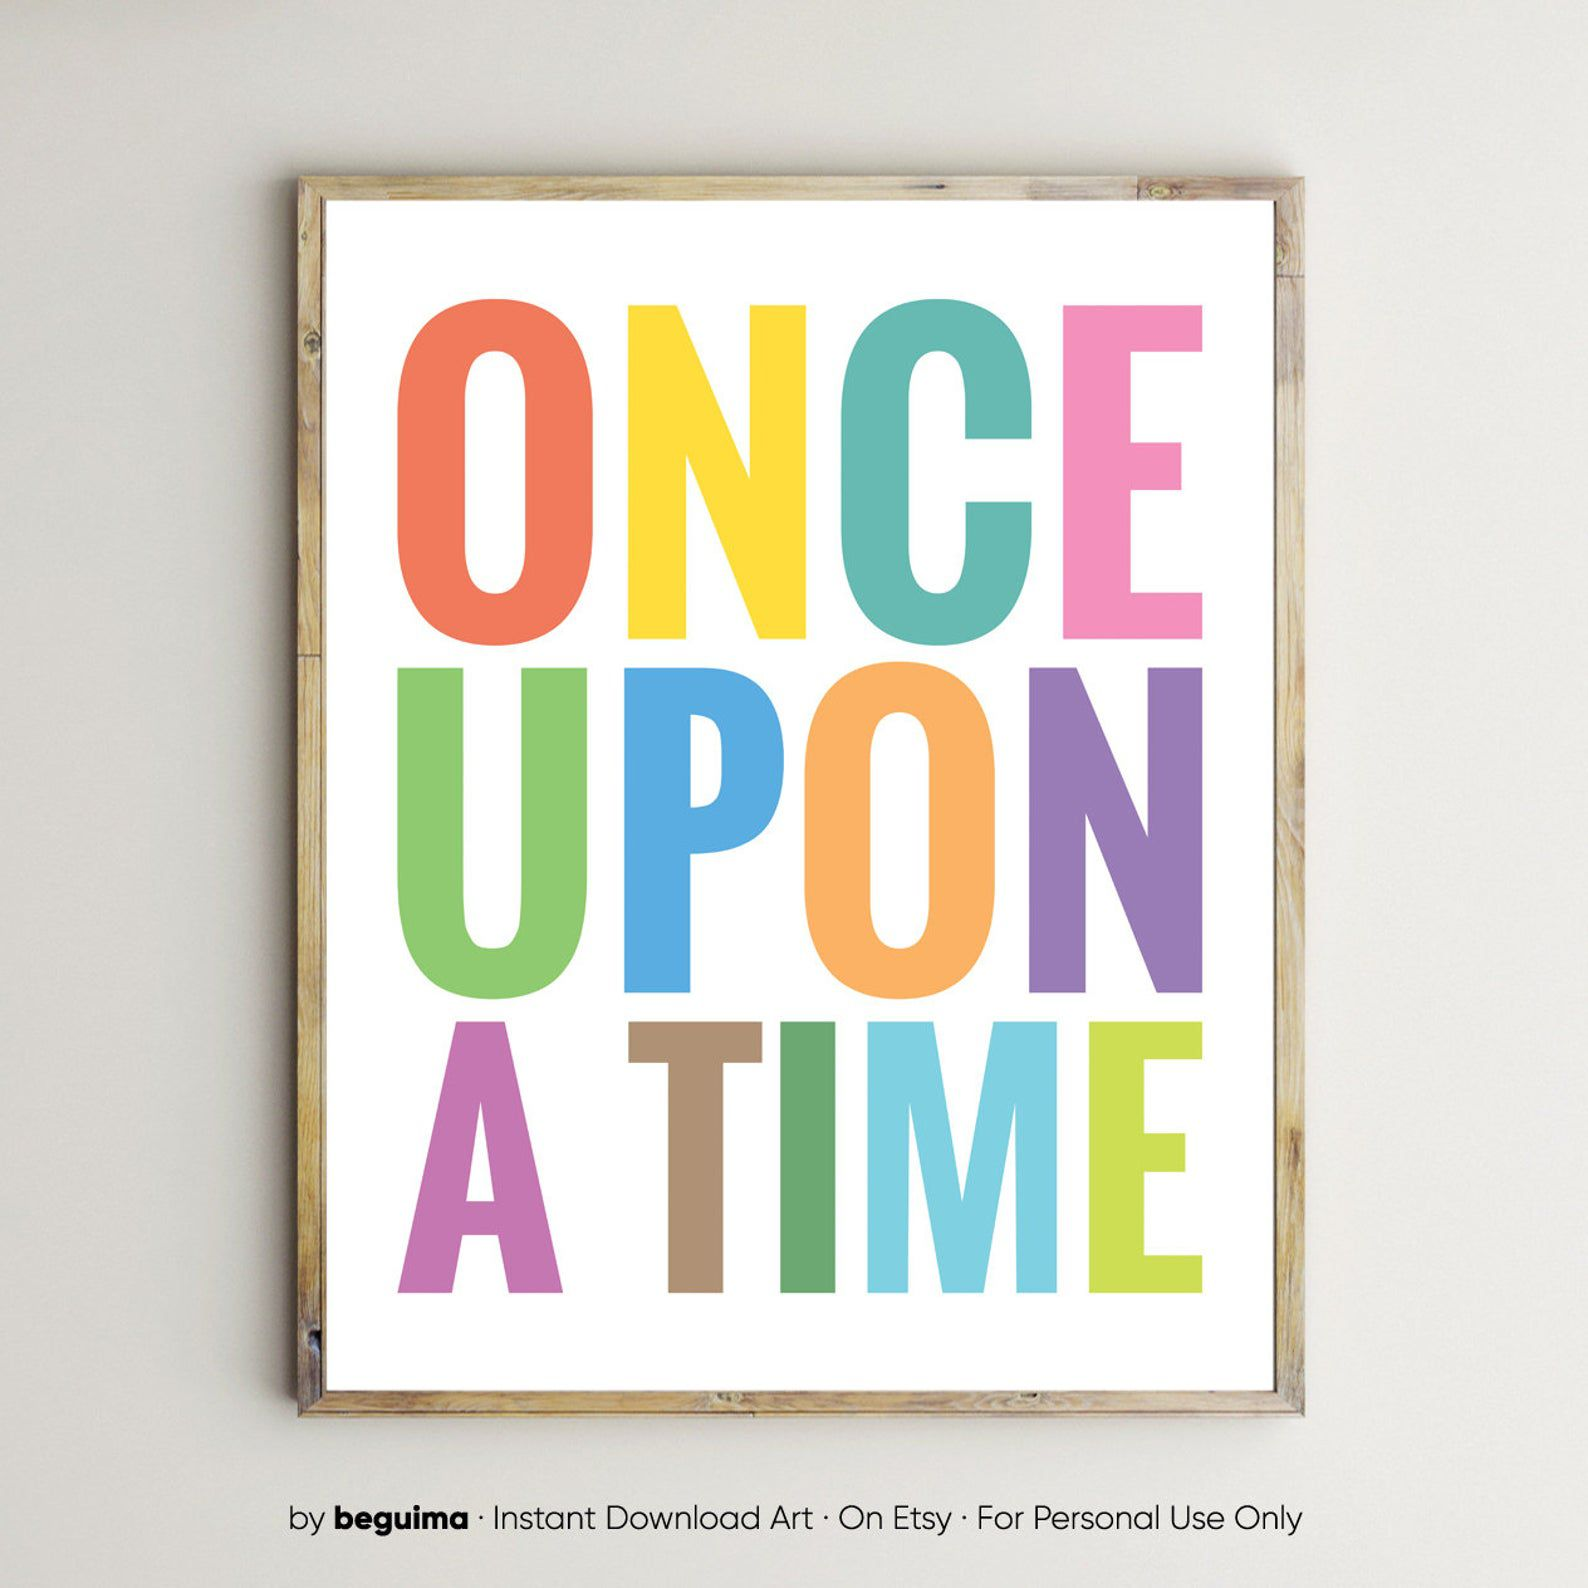 """Image of art reading """"Once Upon a Time."""""""